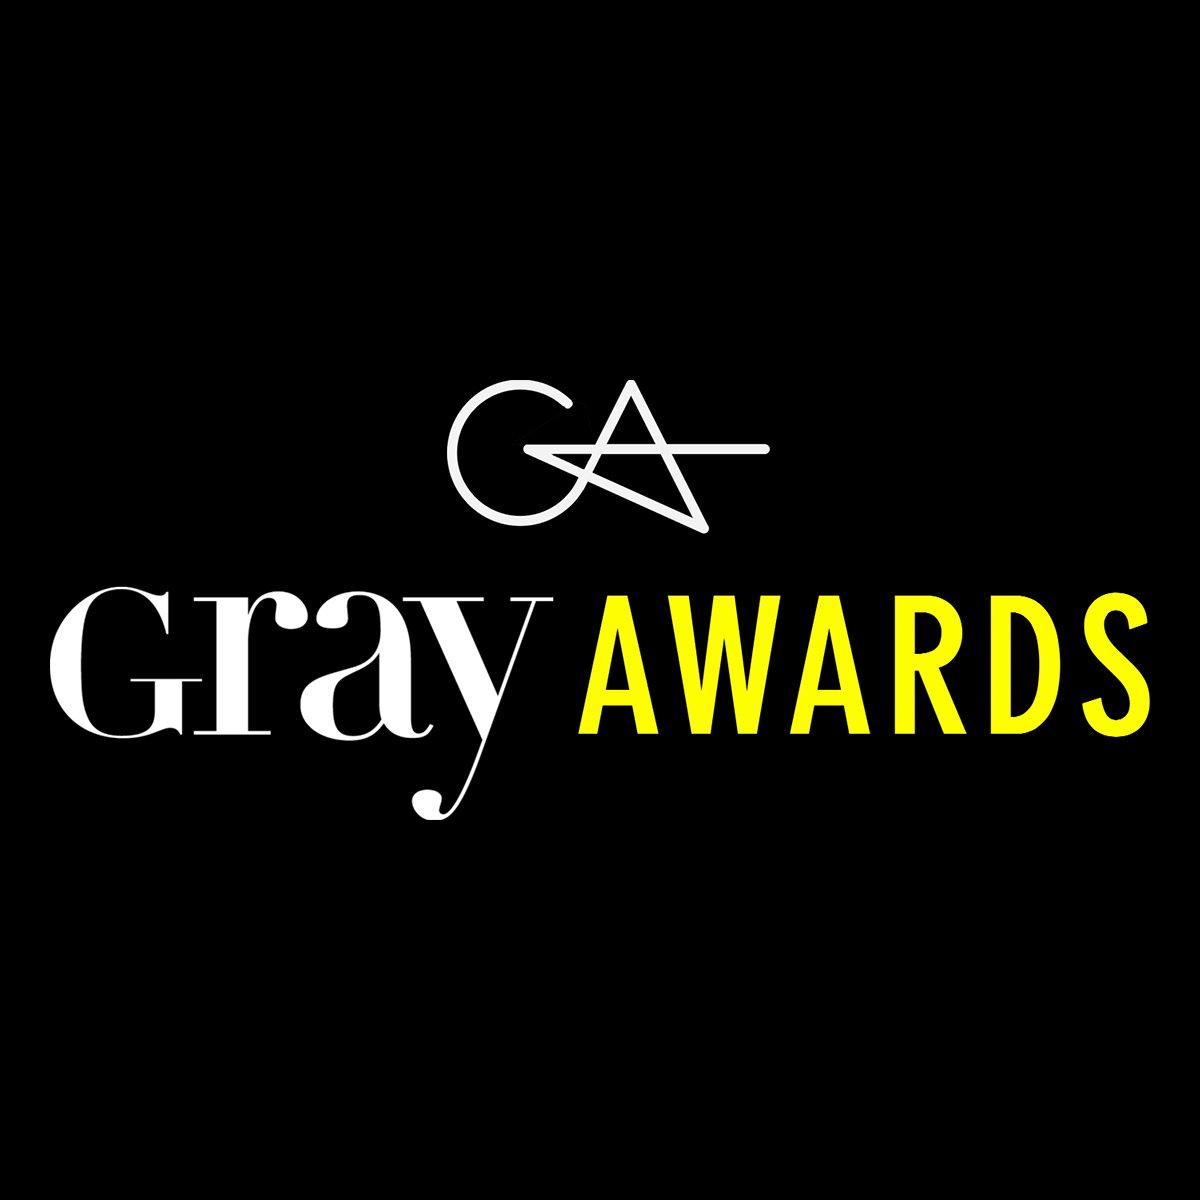 GRAY Launches First Regional Awards Program Focused on the Pacific Northwest